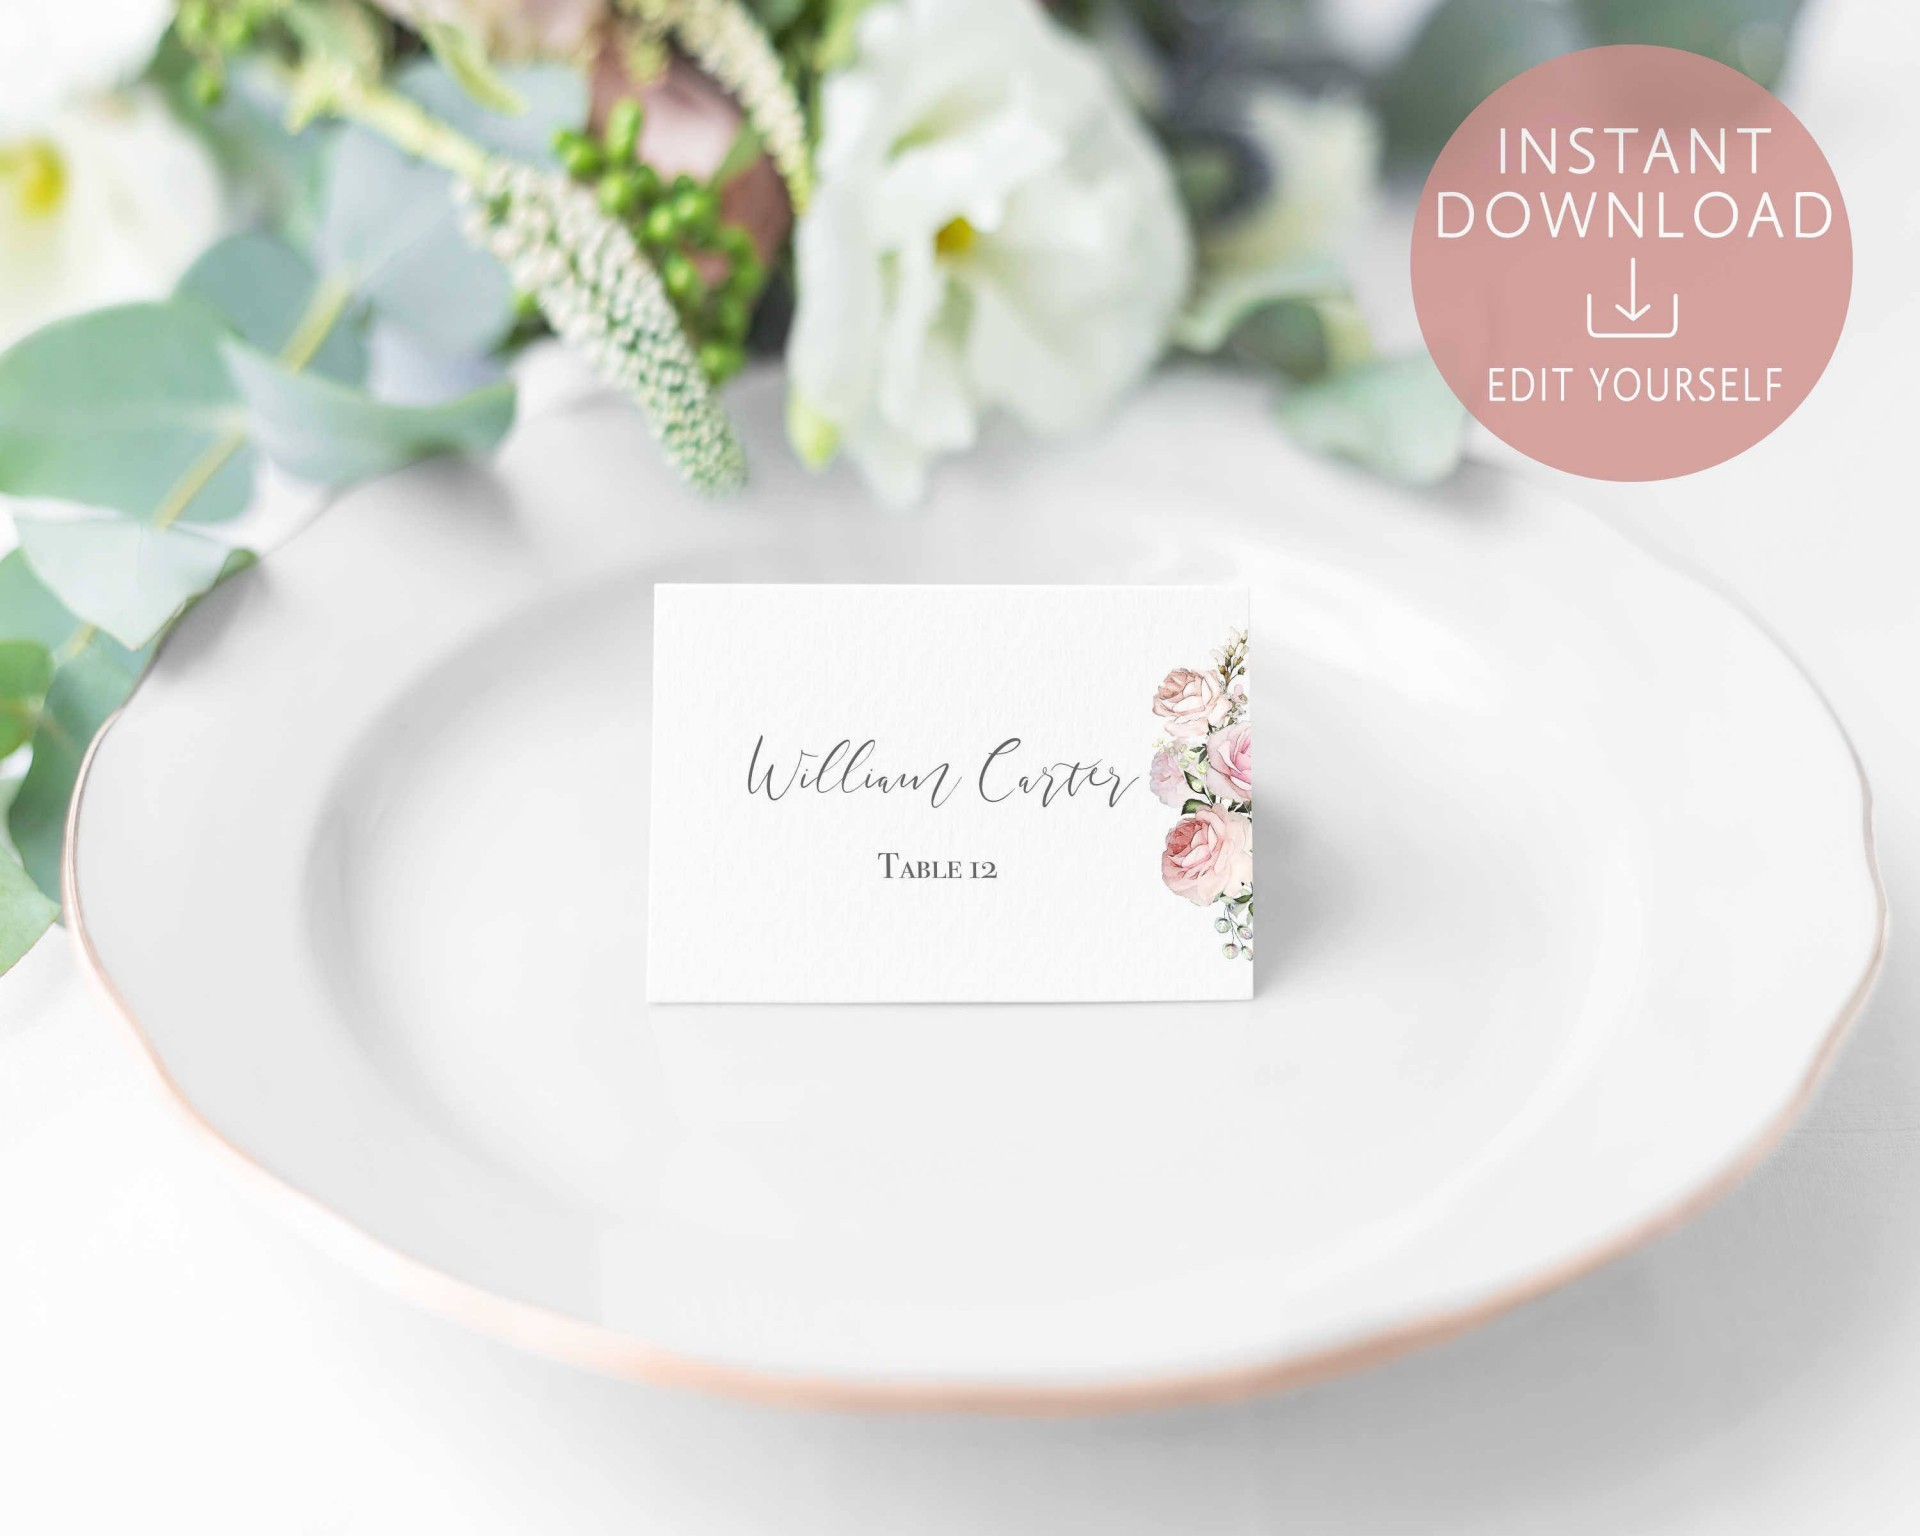 004 Beautiful Name Place Card Template Free Download High Definition  Psd Vector1920